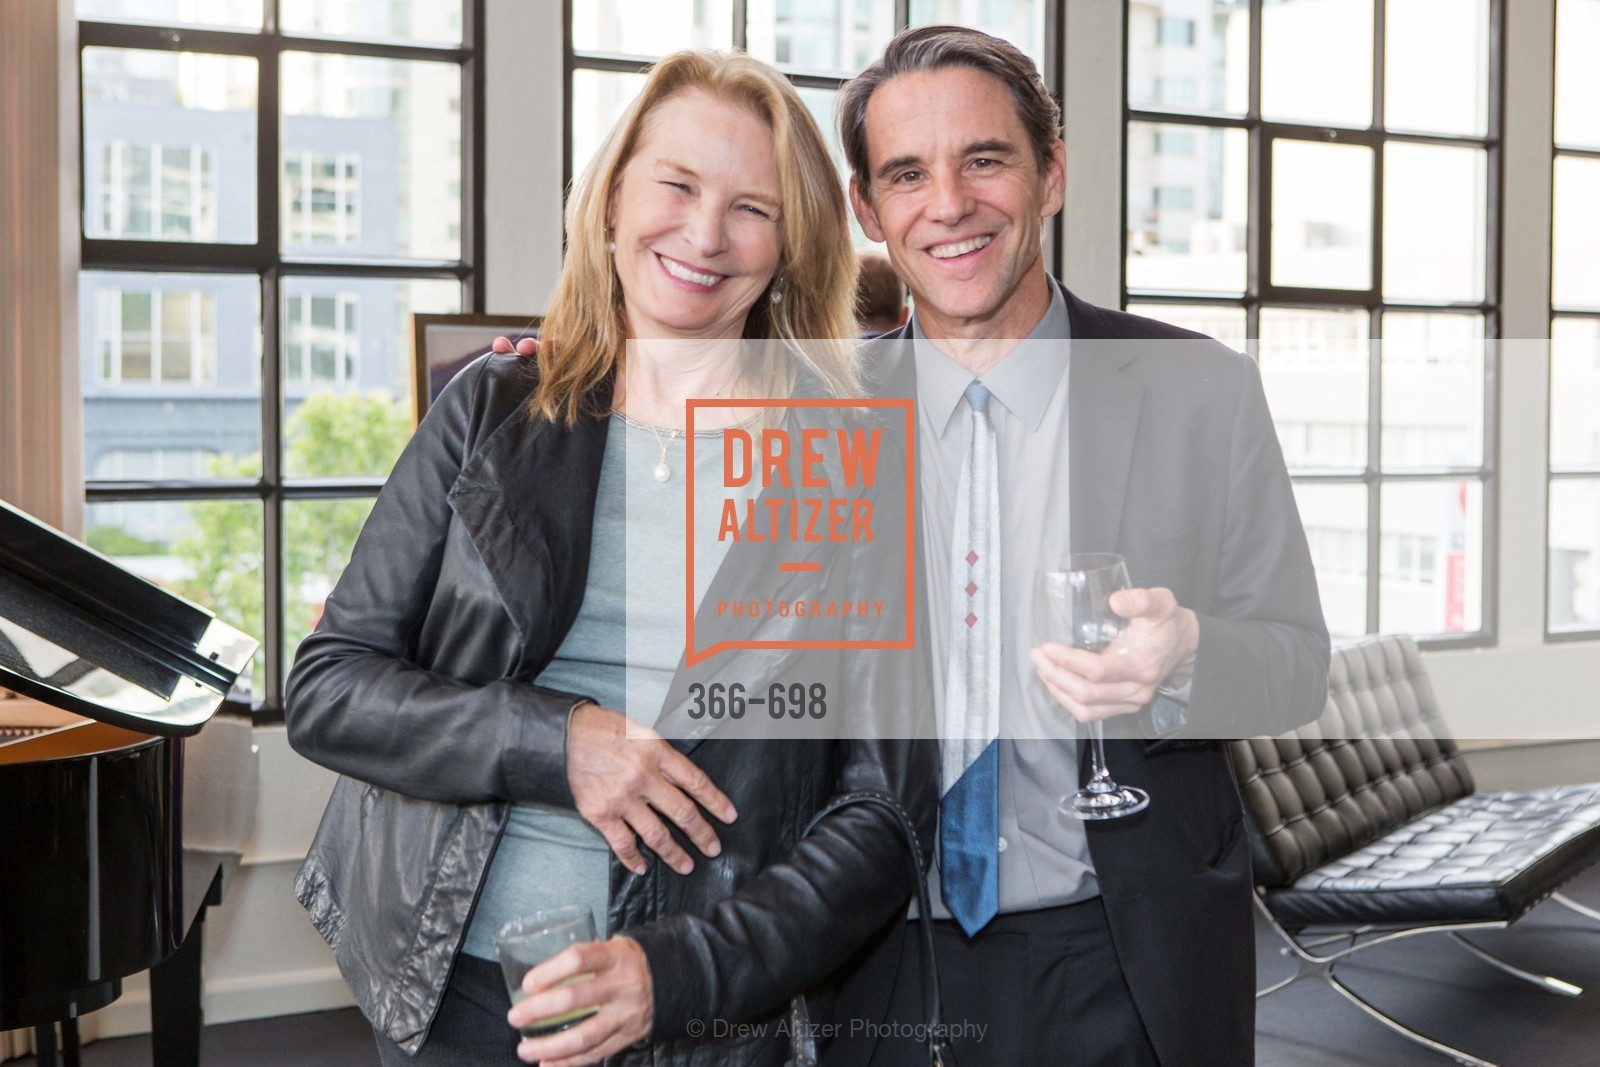 Anna Hawken, EWG's 6th Annual Earth Dinner, US, May 5th, 2015,Drew Altizer, Drew Altizer Photography, full-service agency, private events, San Francisco photographer, photographer california